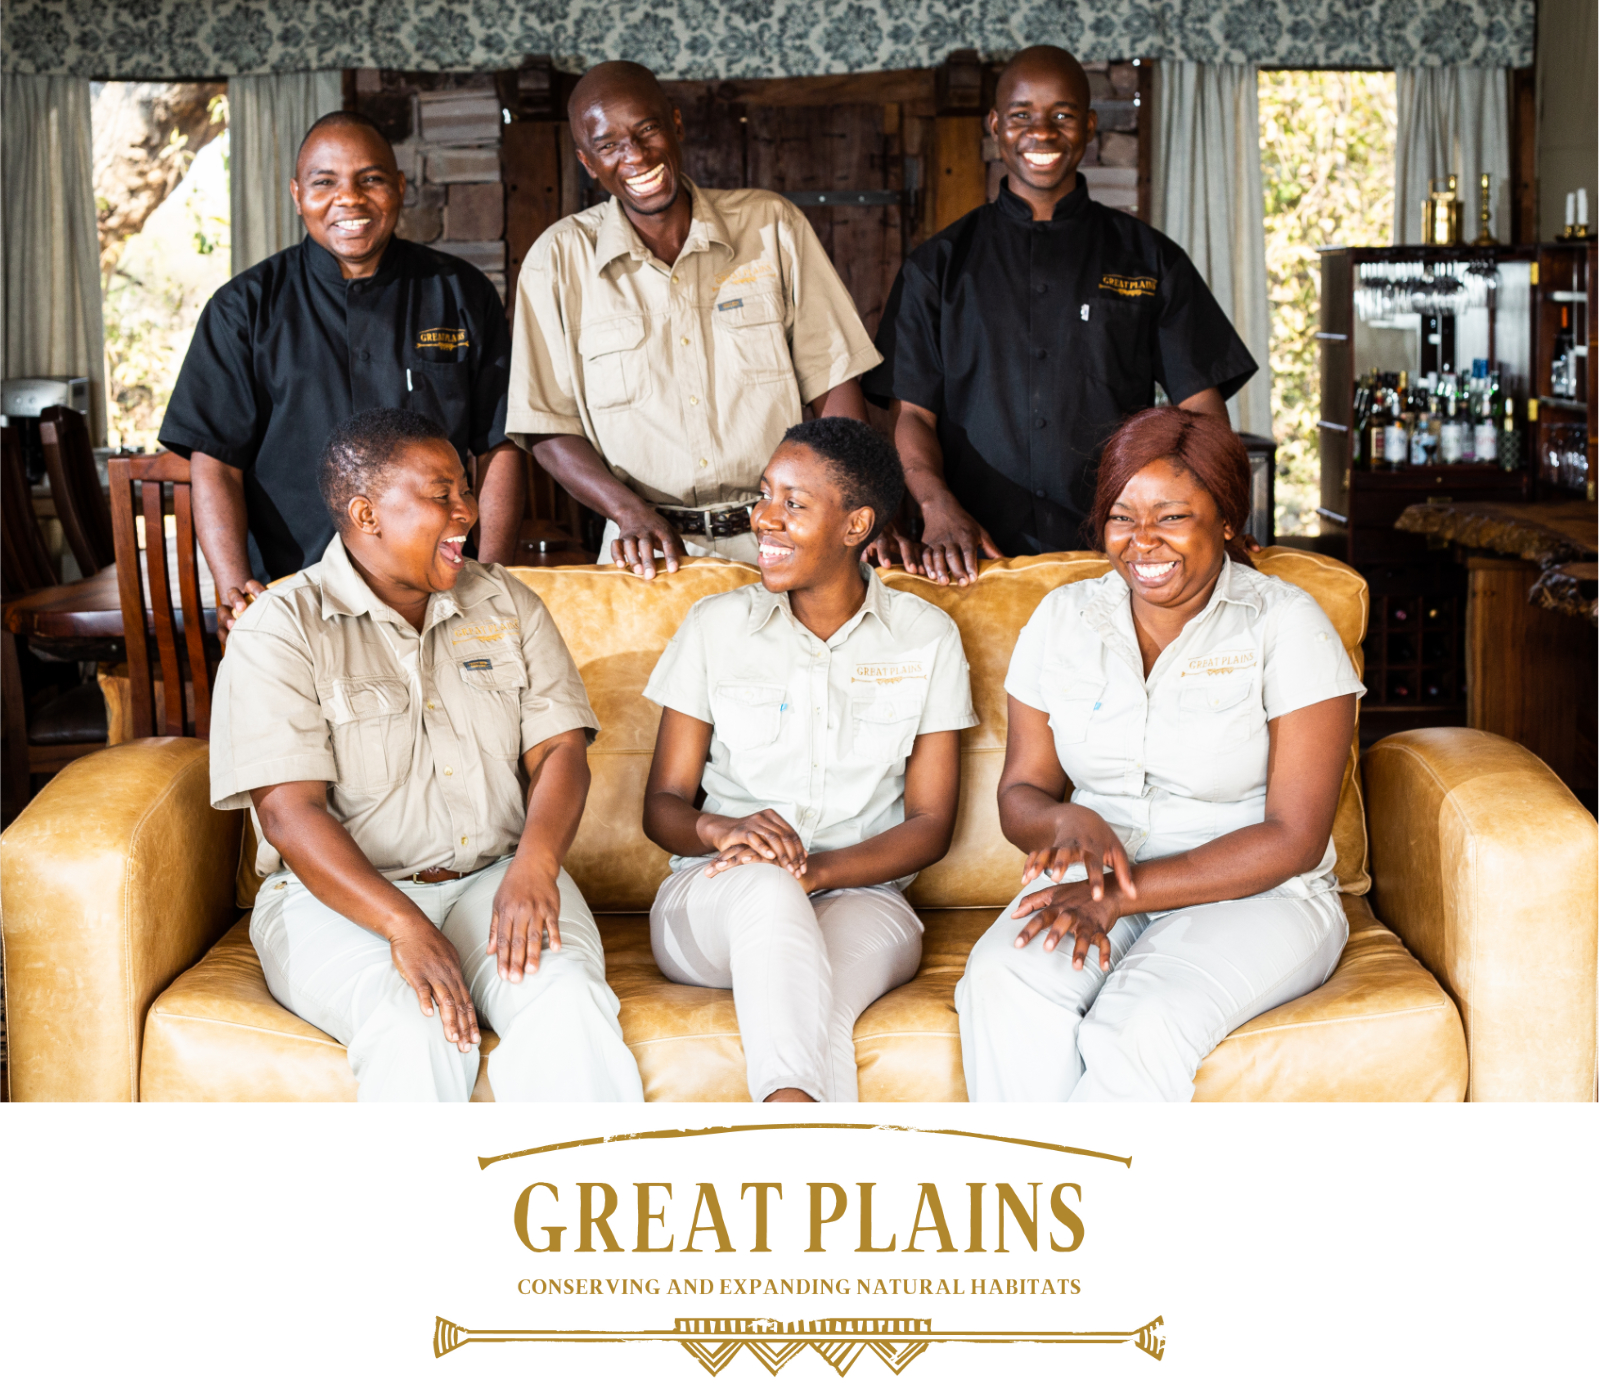 Mpala Jena Camp & Duba Plains Camp join prestigious organisations